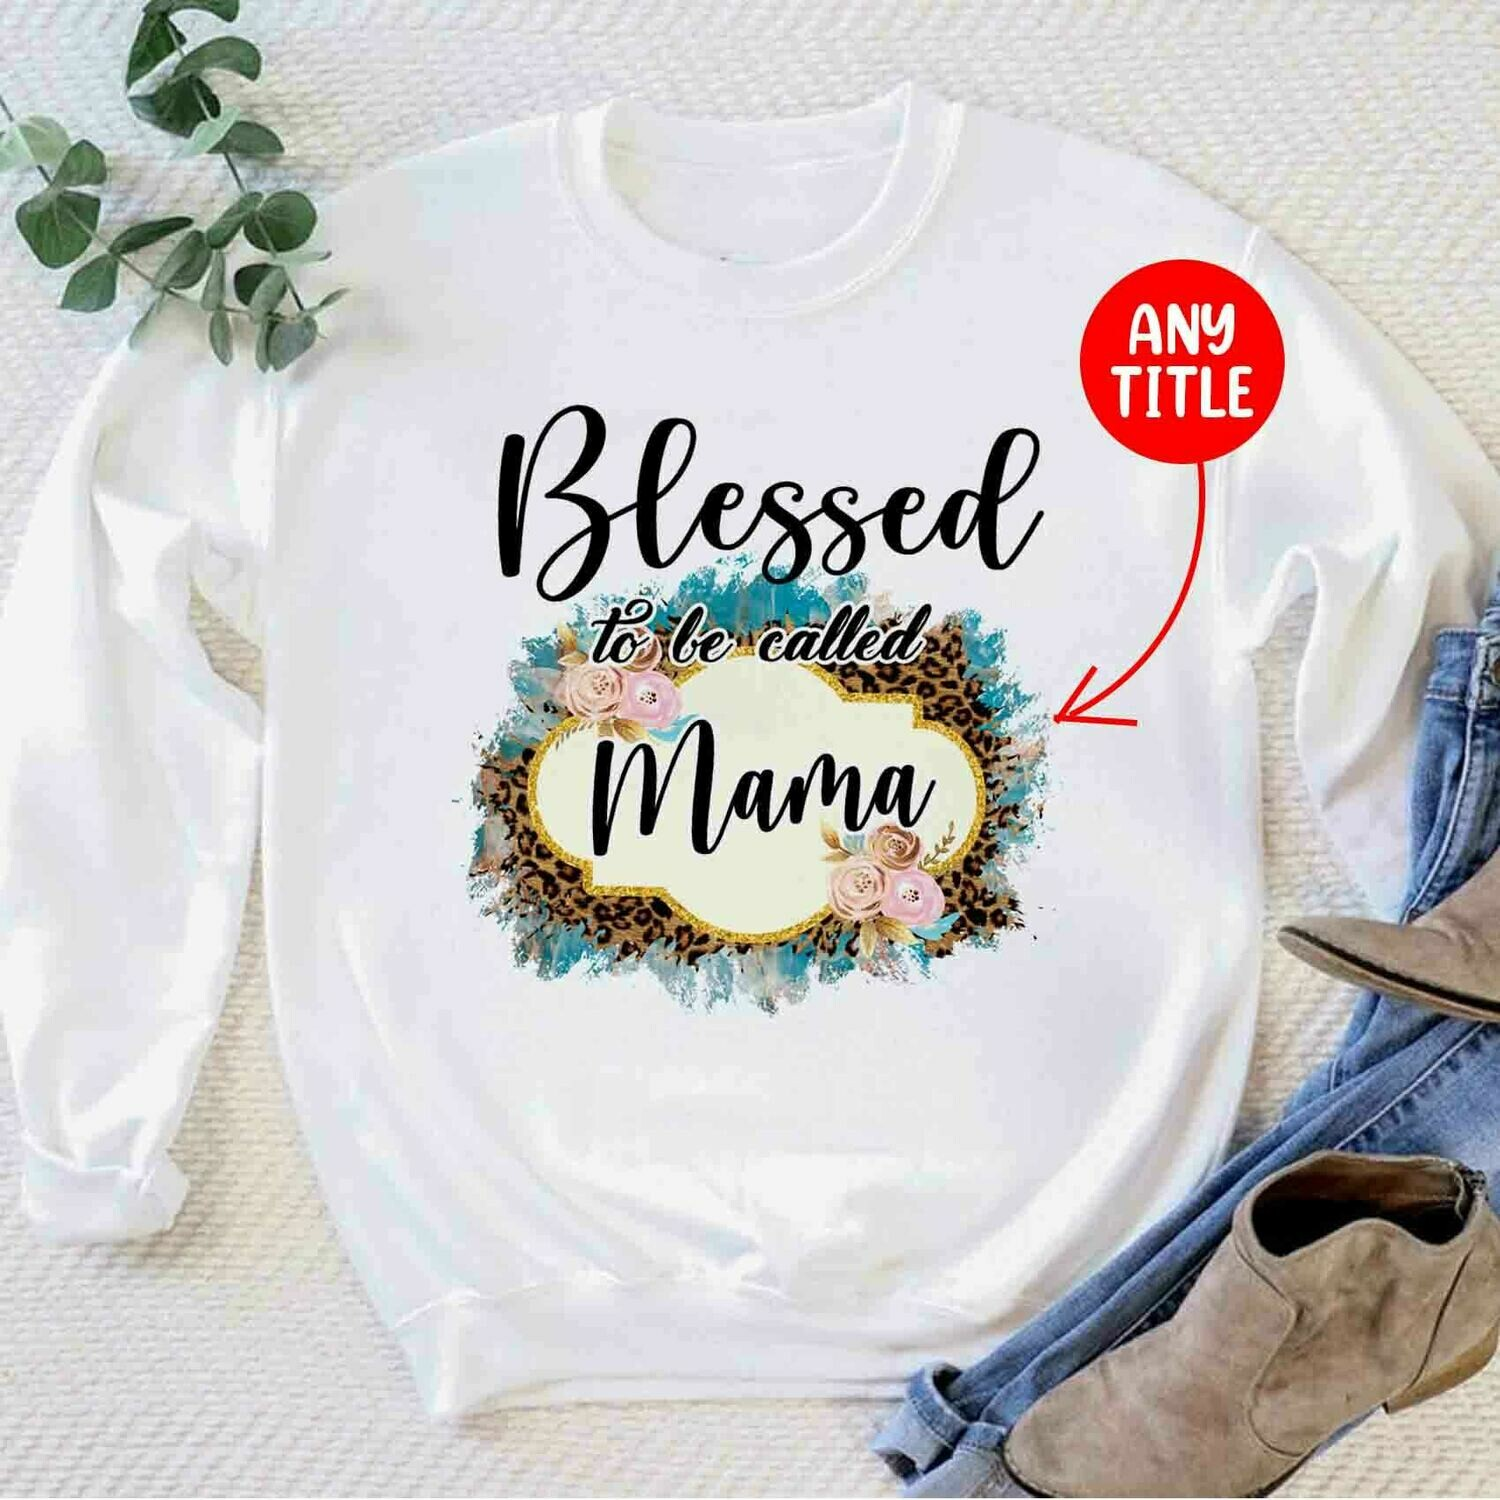 Personalised Custom Name Blessed To Be Called Mama T shirt, Mother gift, Gift for mom, Best Mom Ever T Shirt, Mothers Day T Shirt, Gift for Wife Trending Unisex Hoodies Sweatshirt Long Sleeve shirt